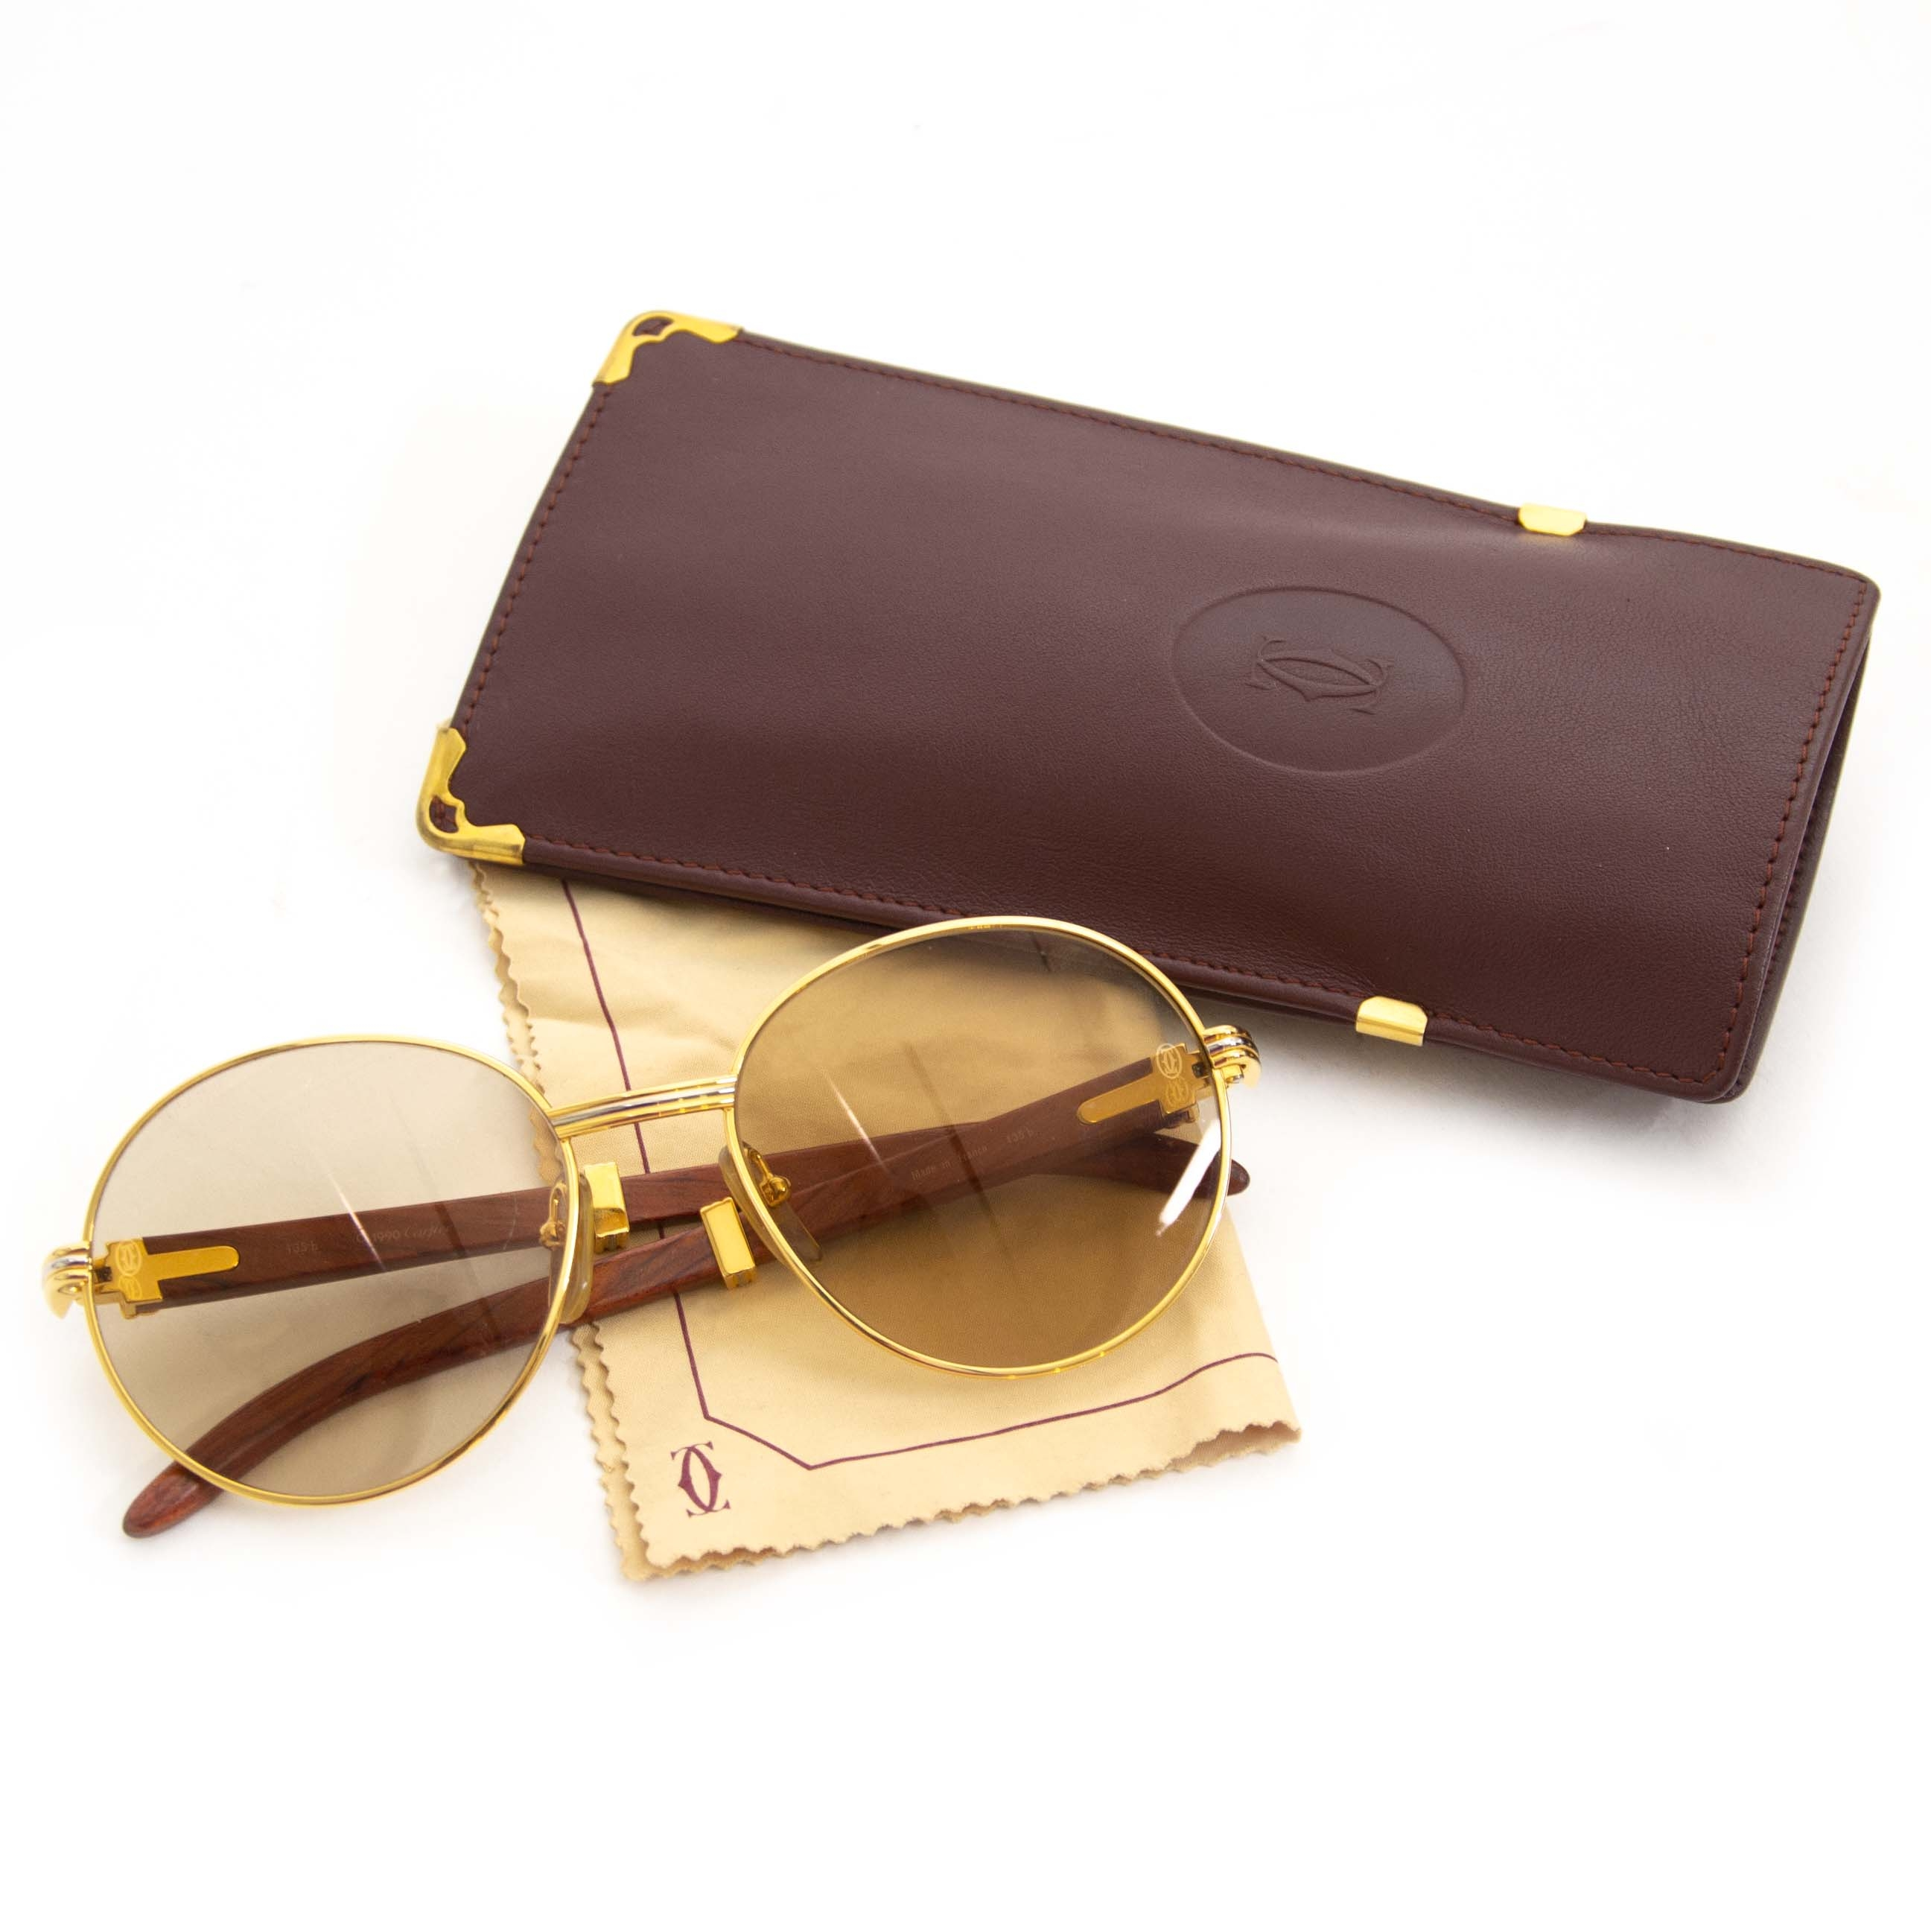 Rare Cartier Giverny Palisander Rosewood Gold Sunglasses for sale online